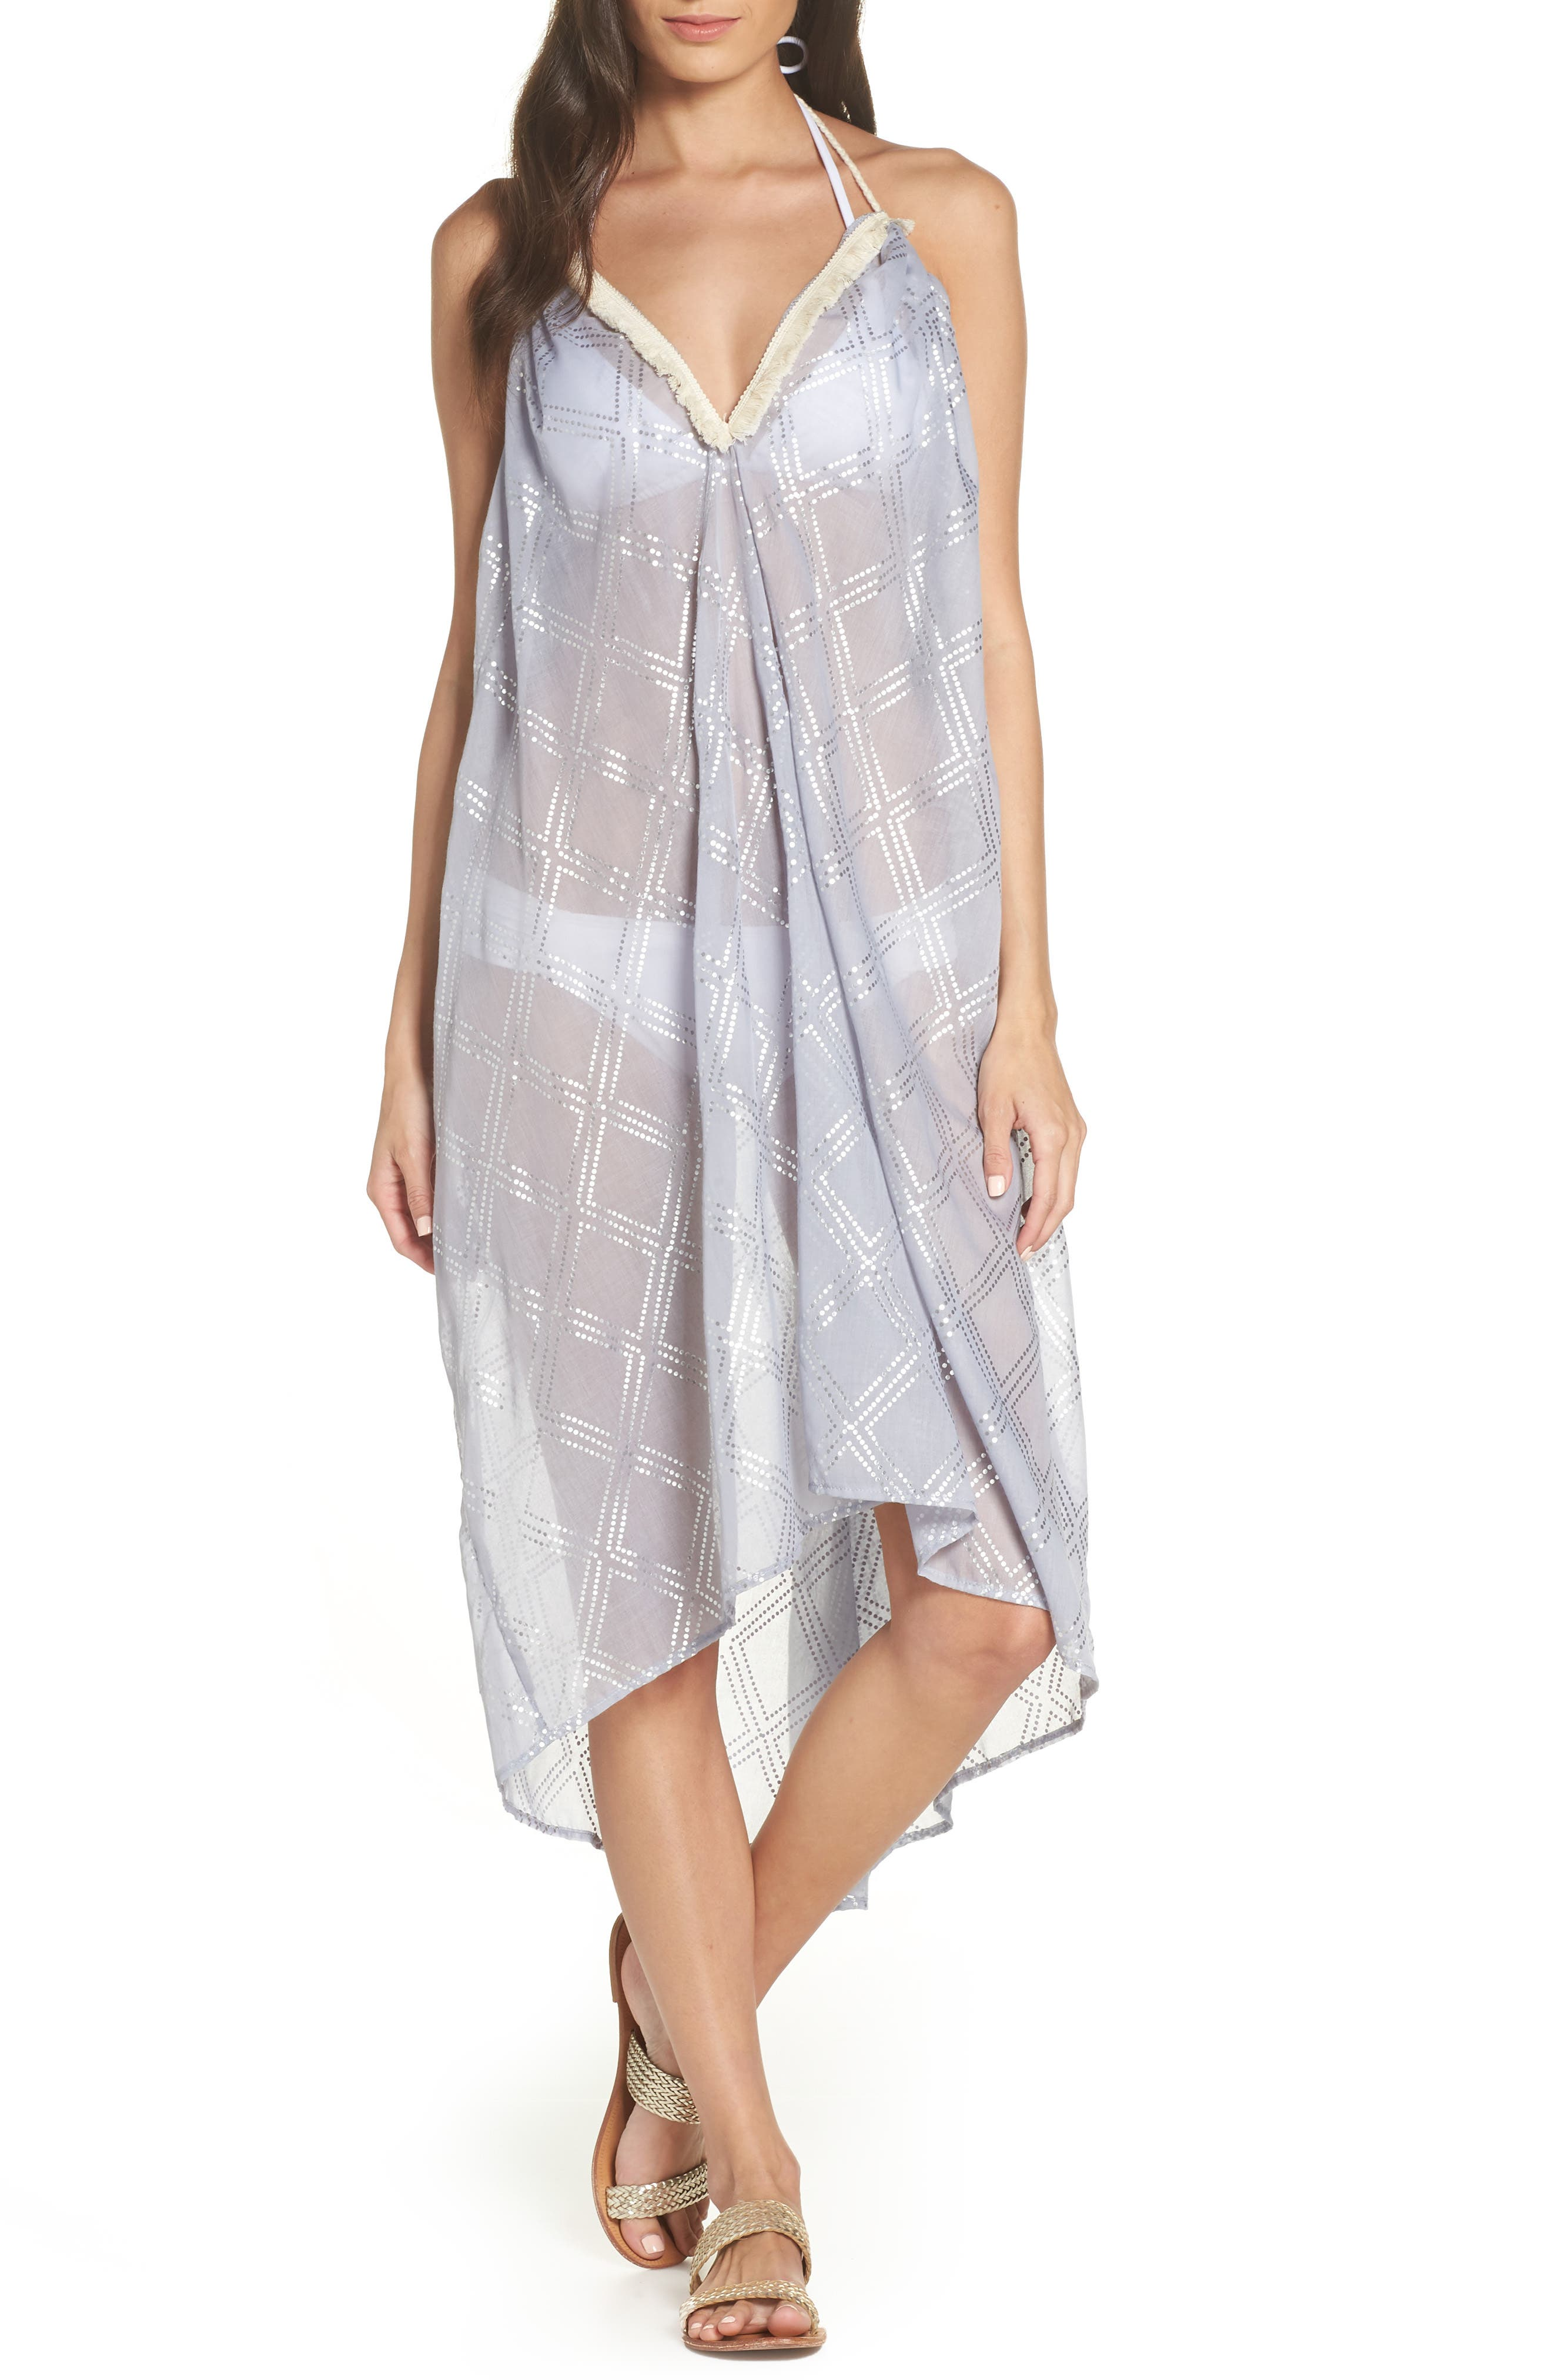 SURF GYPSY Metallic Print Cover-Up Dress in Blue Metallic